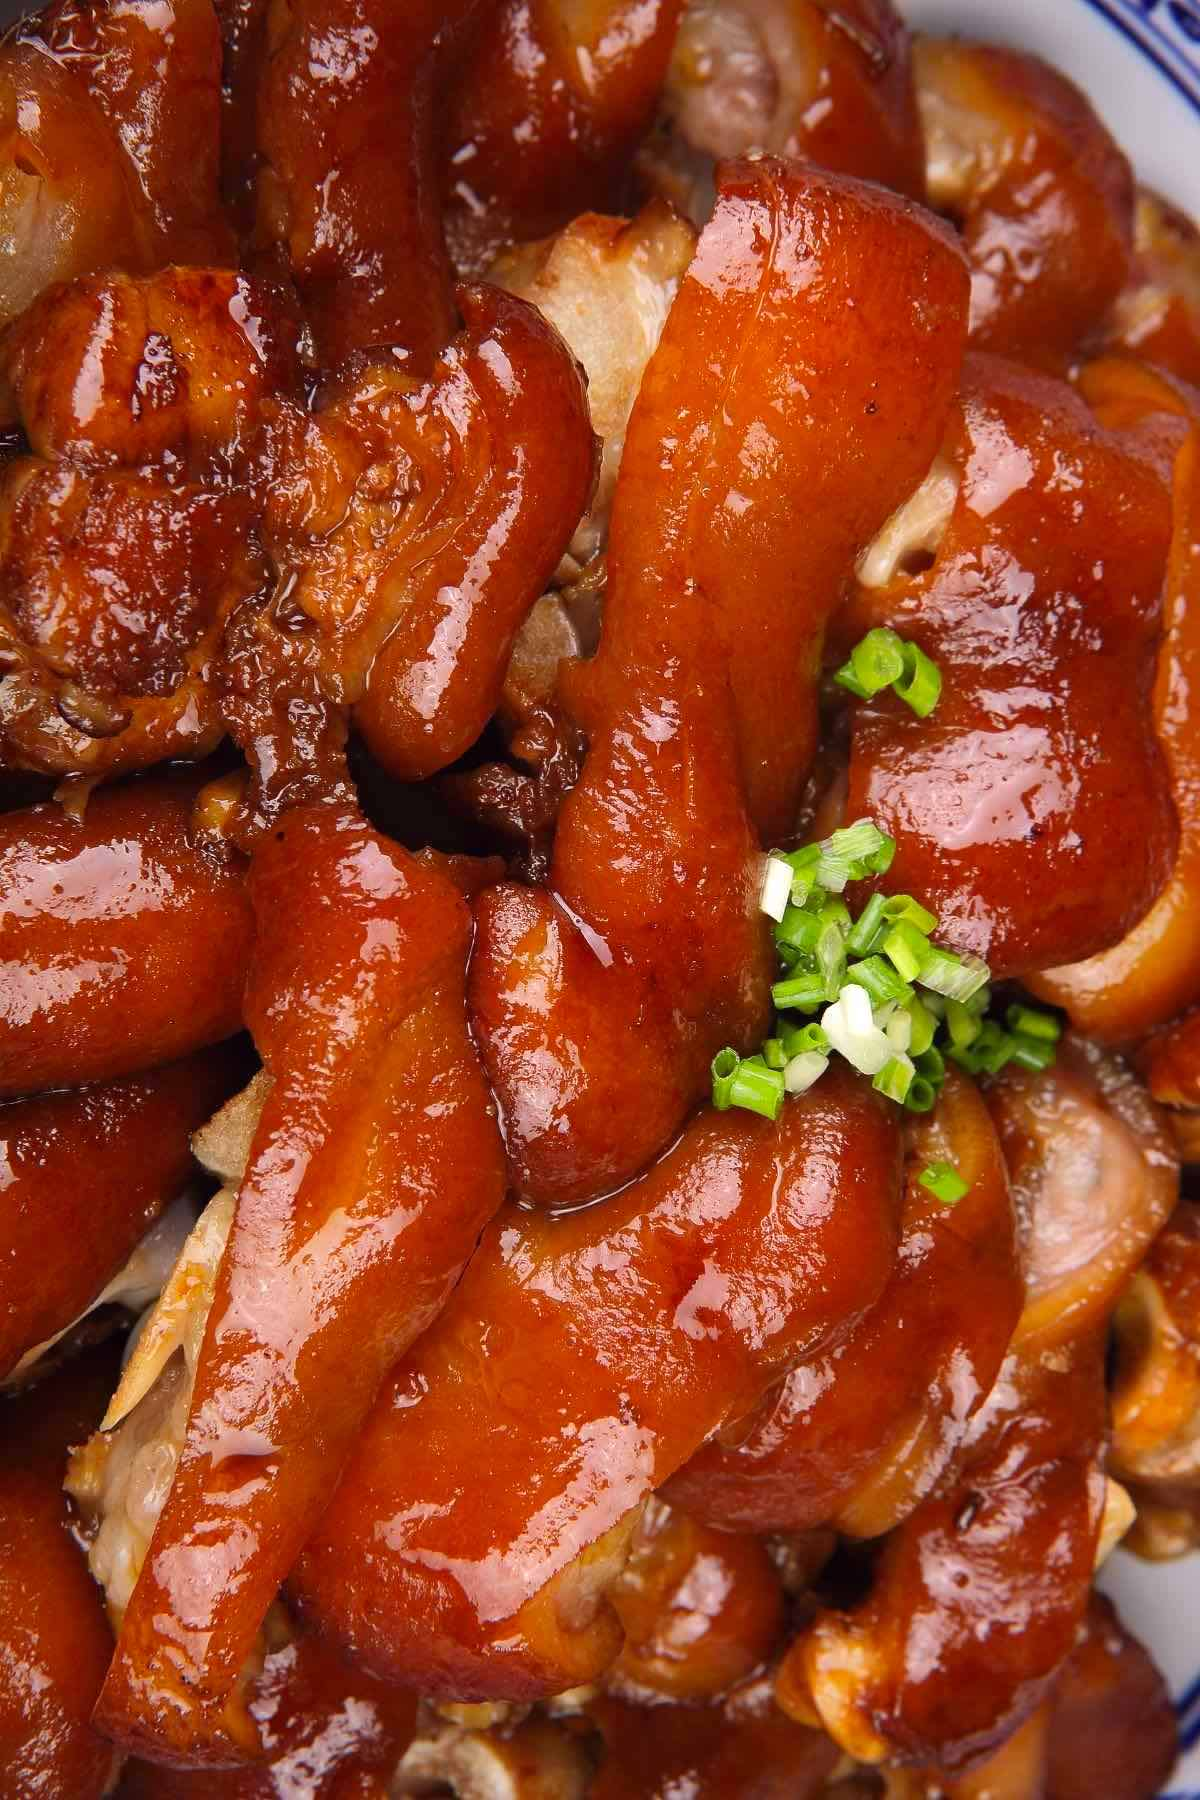 Braised Pig's Feet are tender, juicy, and flavorful – cooked long and slow in a rich sauce. Pig feet or pig trotters are considered one of the most delicious parts of pork. My family makes this recipe for regular weekdays and special occasions like Chinese New Year. Serve them with mashed potatoes and green vegetables for an amazing meal! #PigFeet #PigFeetRecipe #PigTrotters #PorkFeet